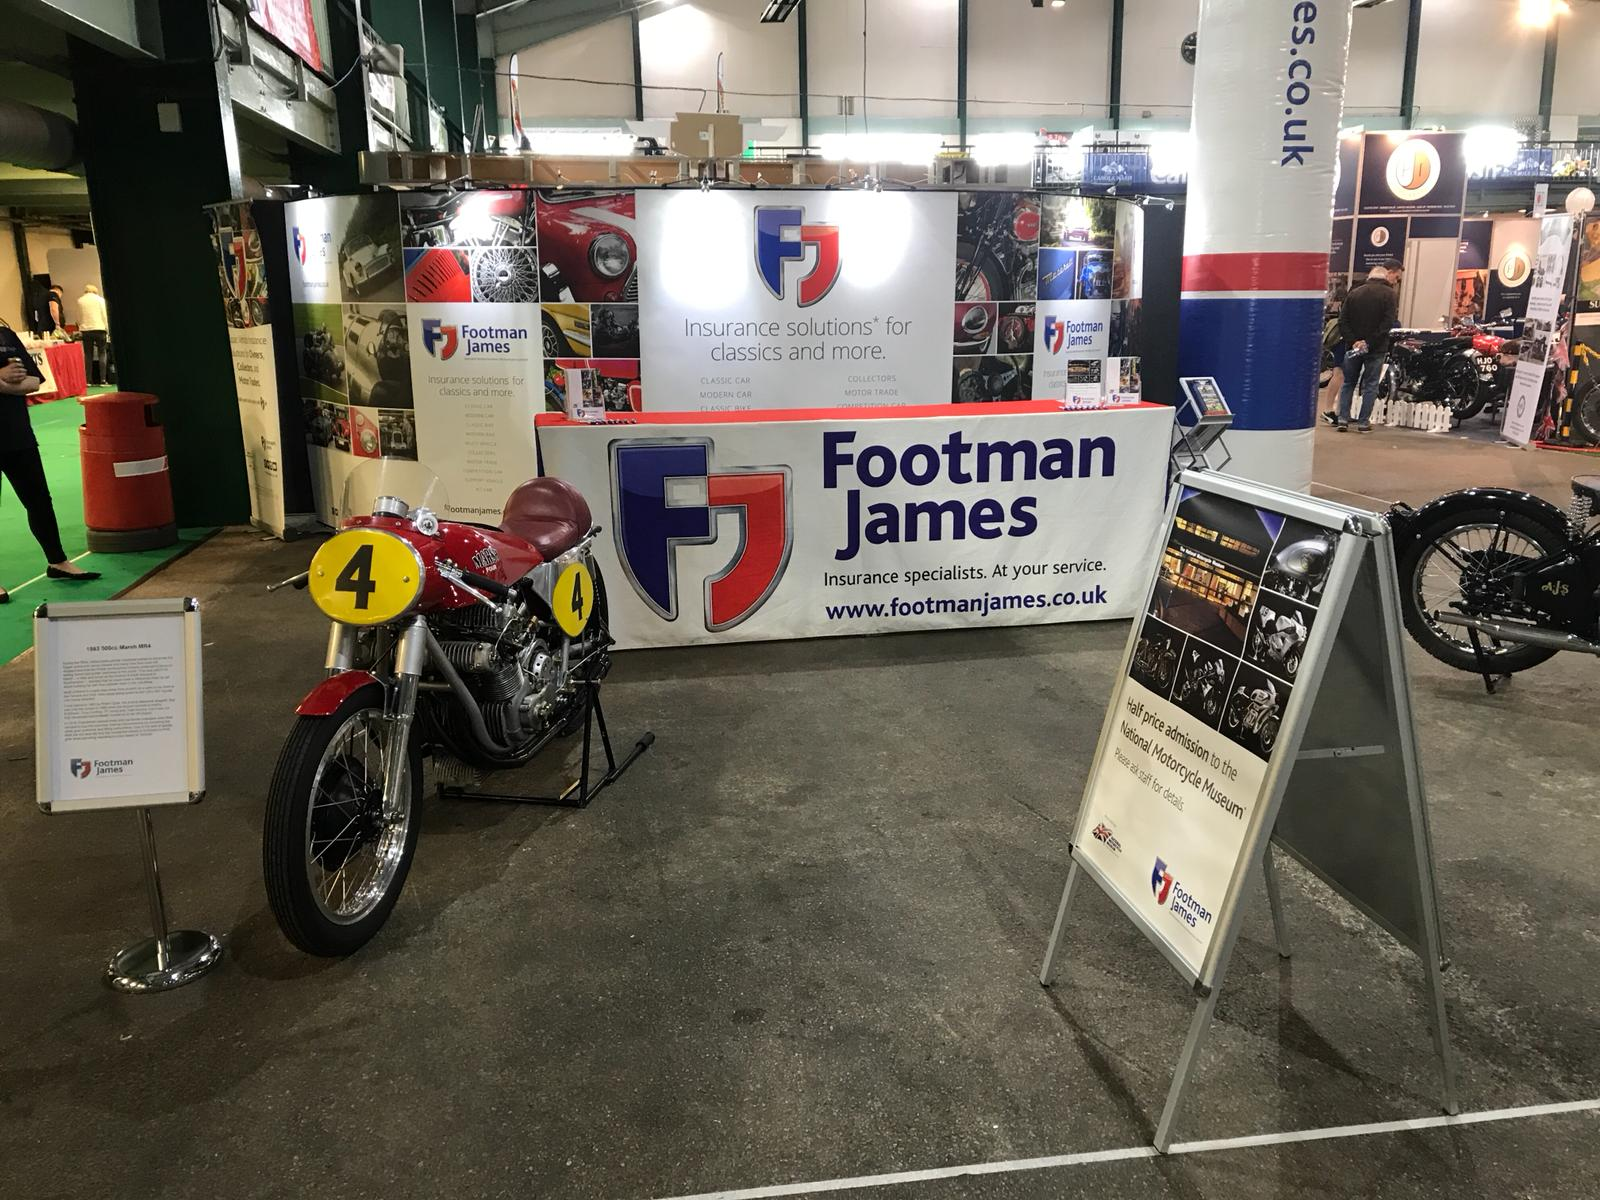 The FJ stand